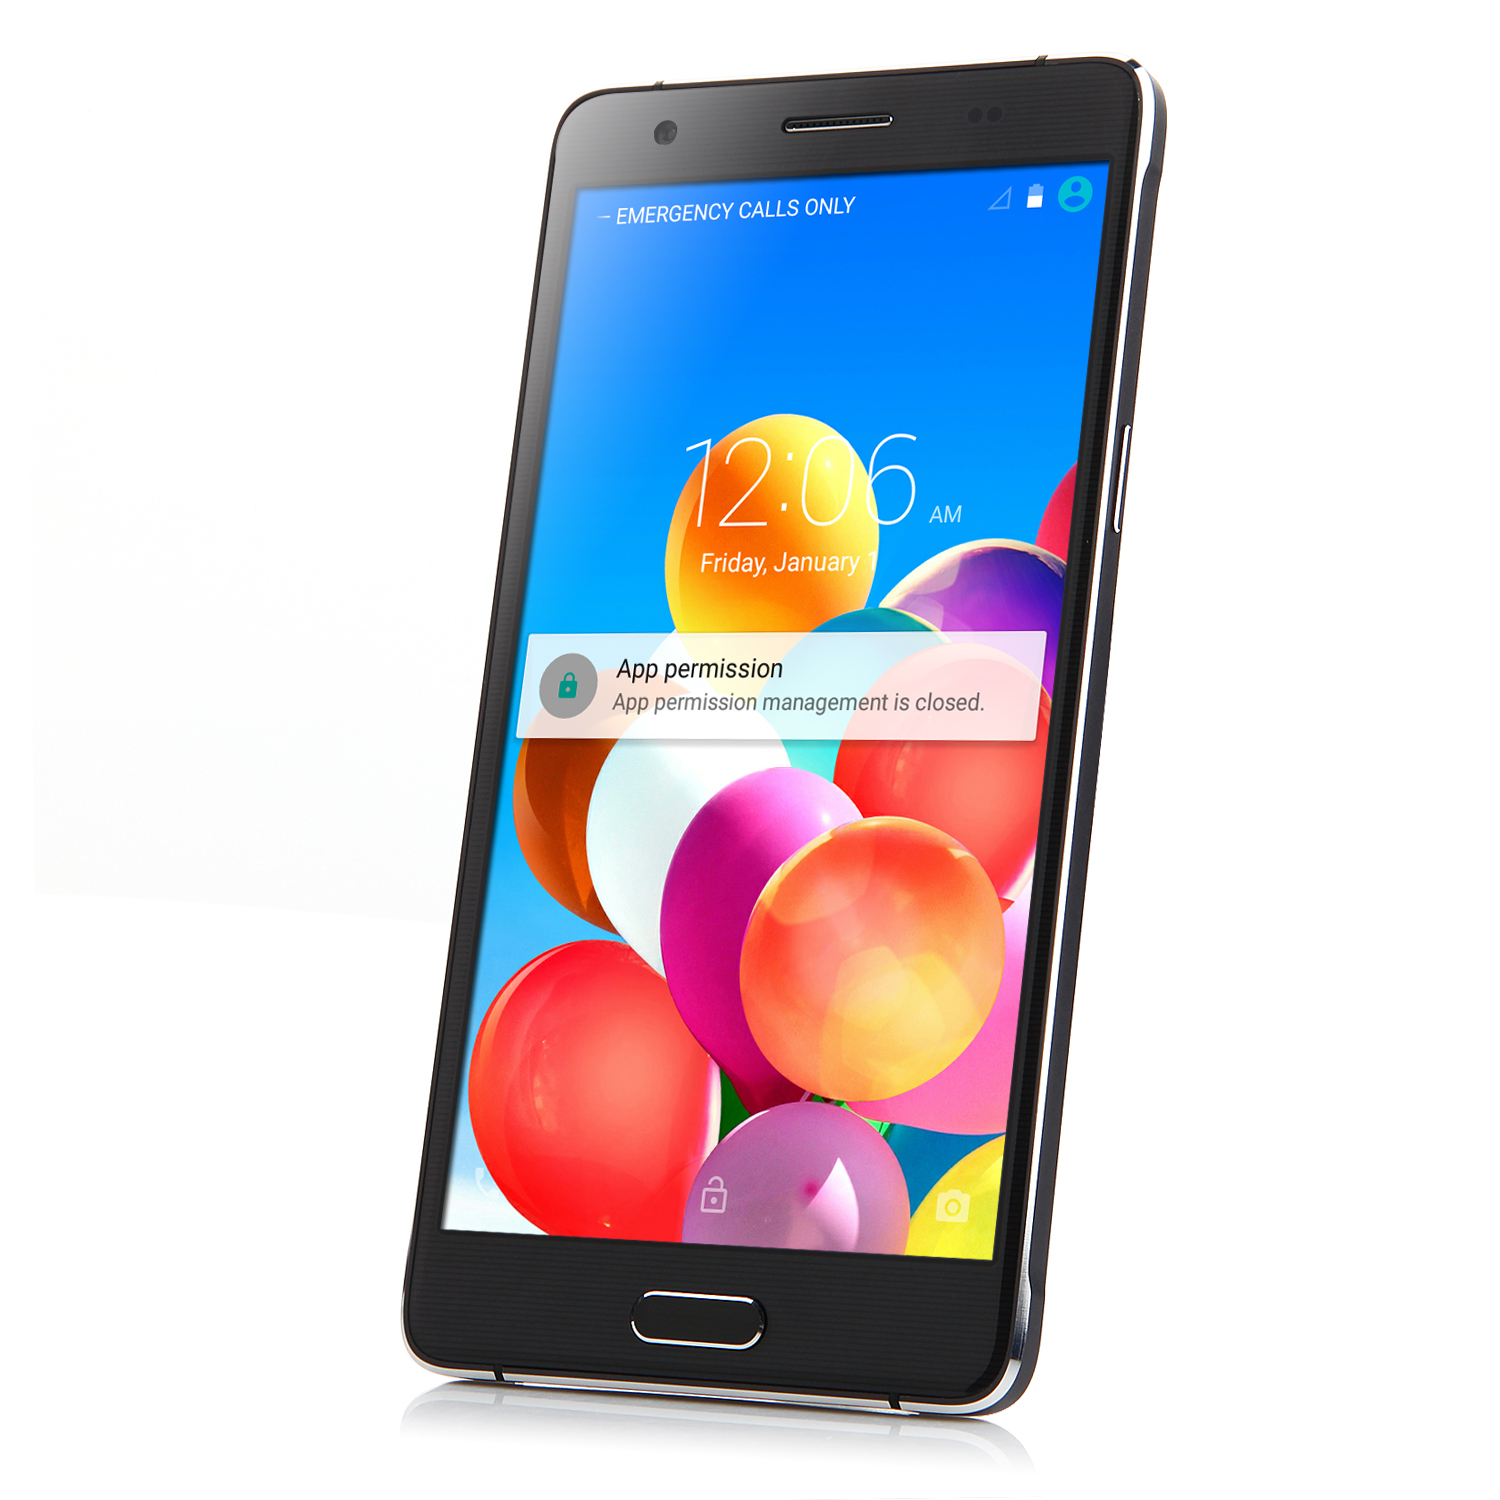 Tengda N9200 4G Smartphone Android 5.0 64bit MTK6732 Quad Core 5.5 Inch HD Screen